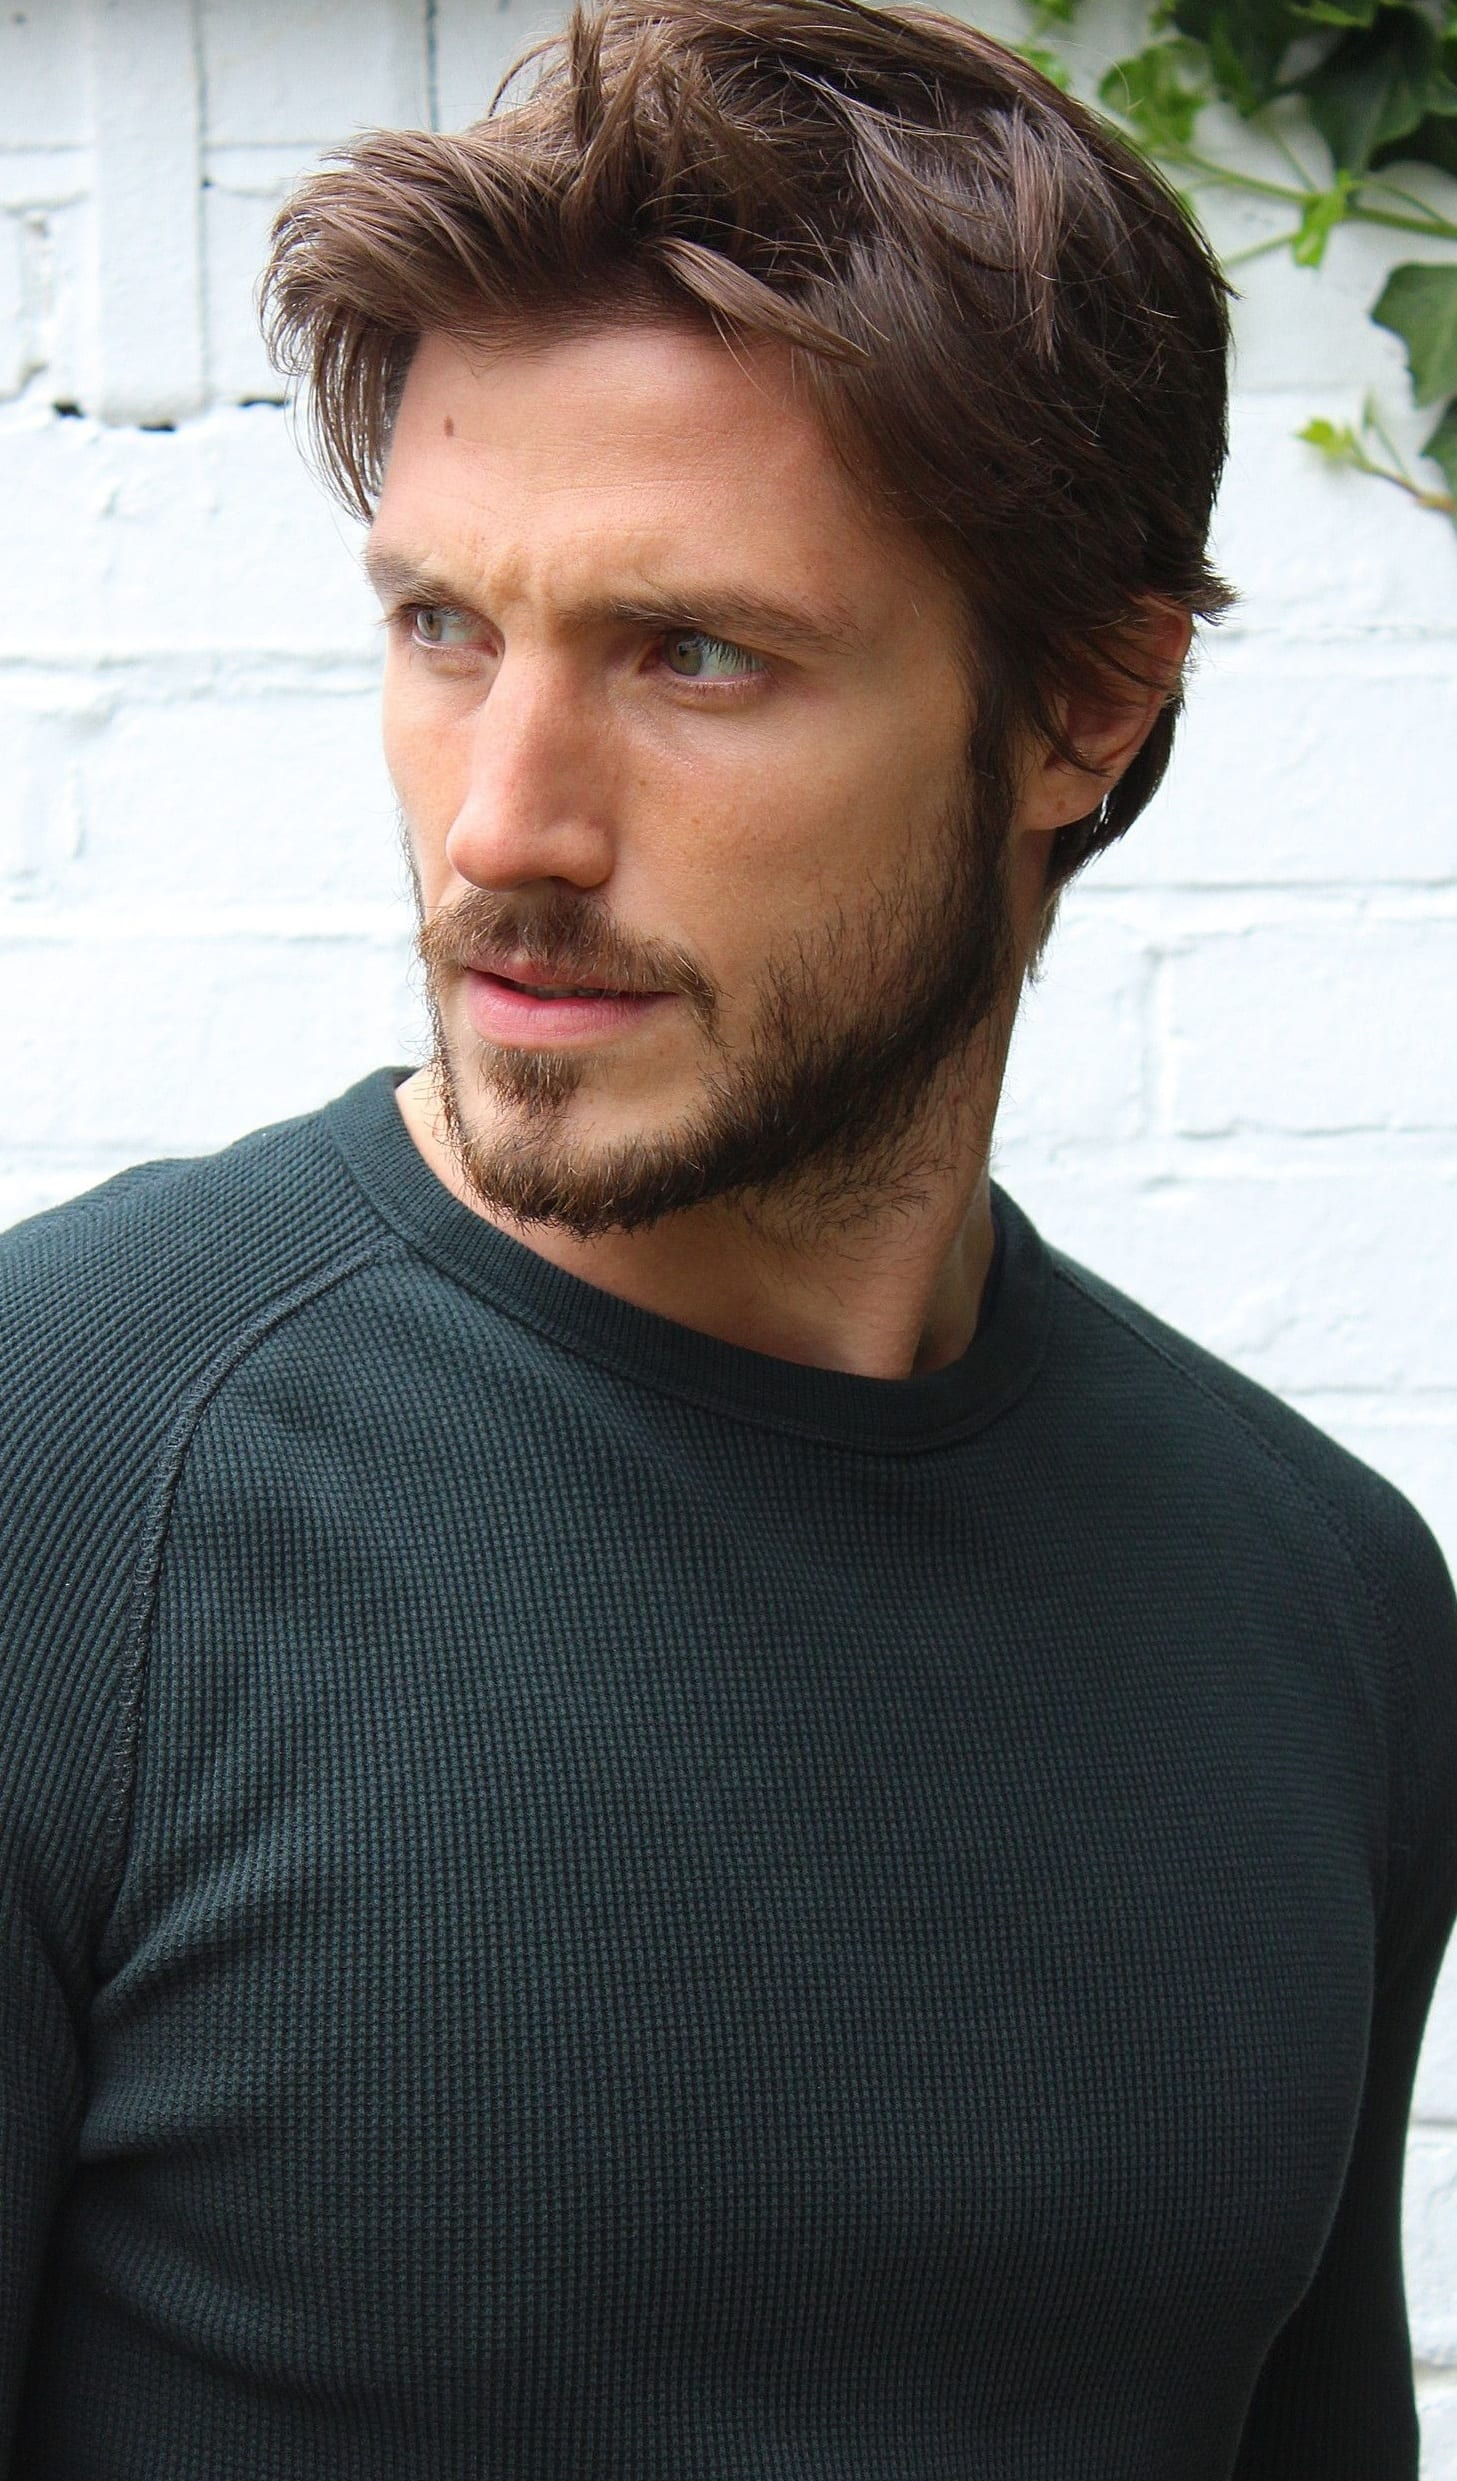 Stubble Beard look for men